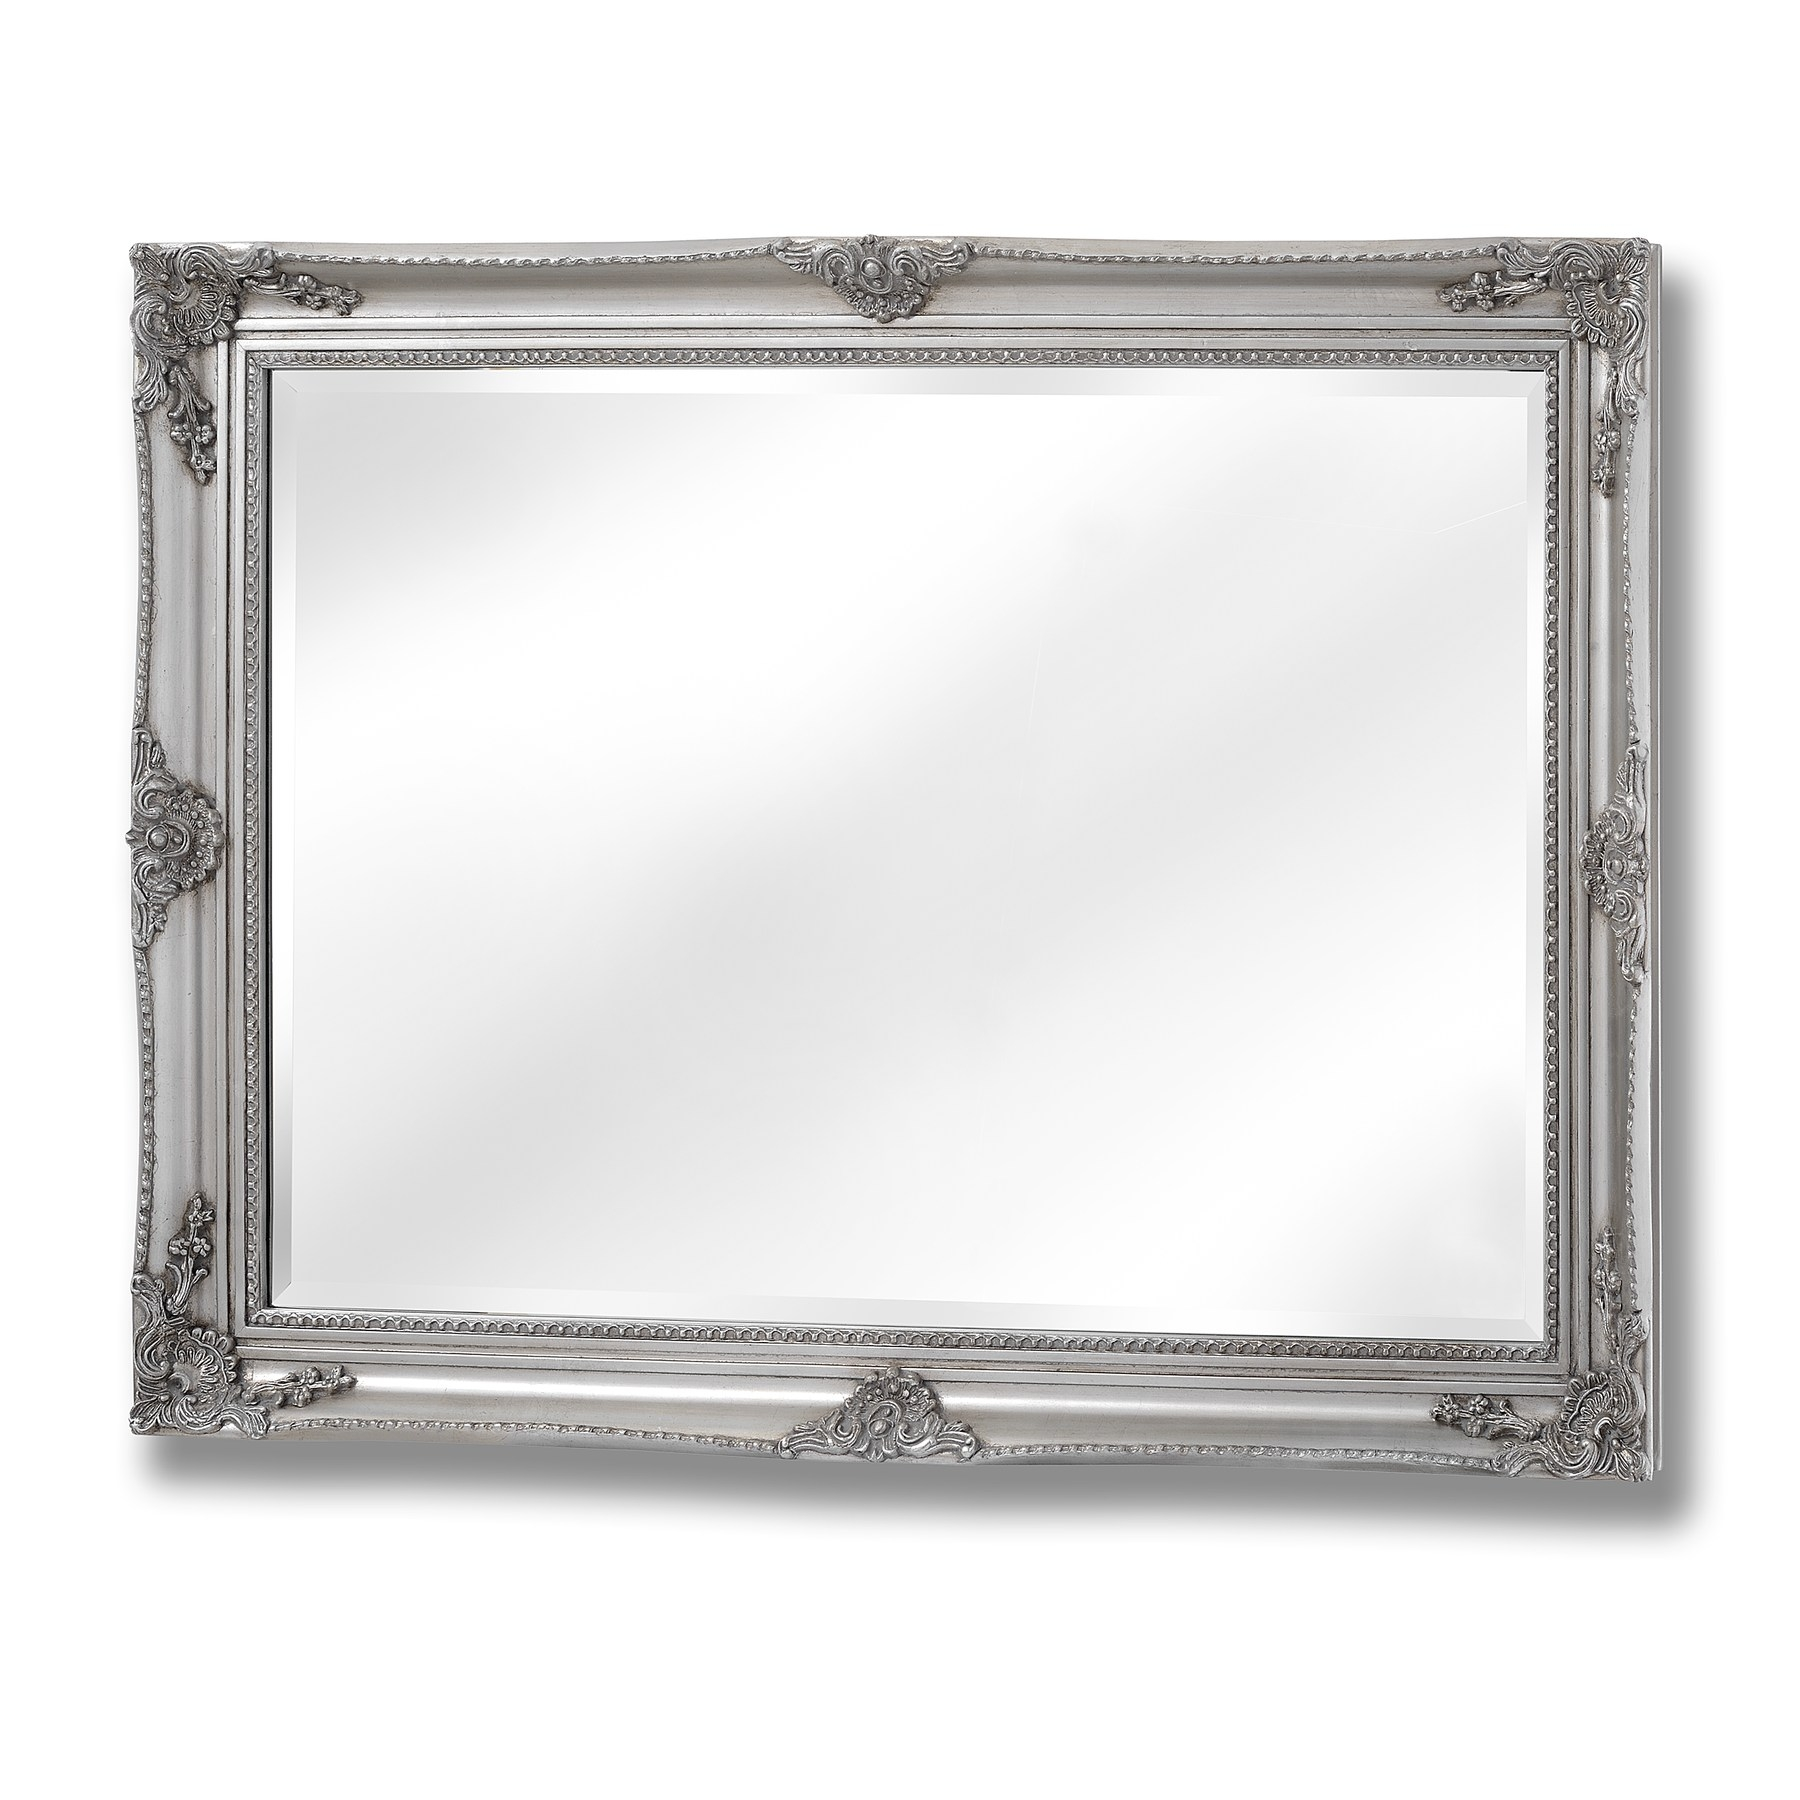 Baroque Style Large Silver Wall Mirror Happy Home Interiors Throughout Silver Baroque Mirror (Image 3 of 15)